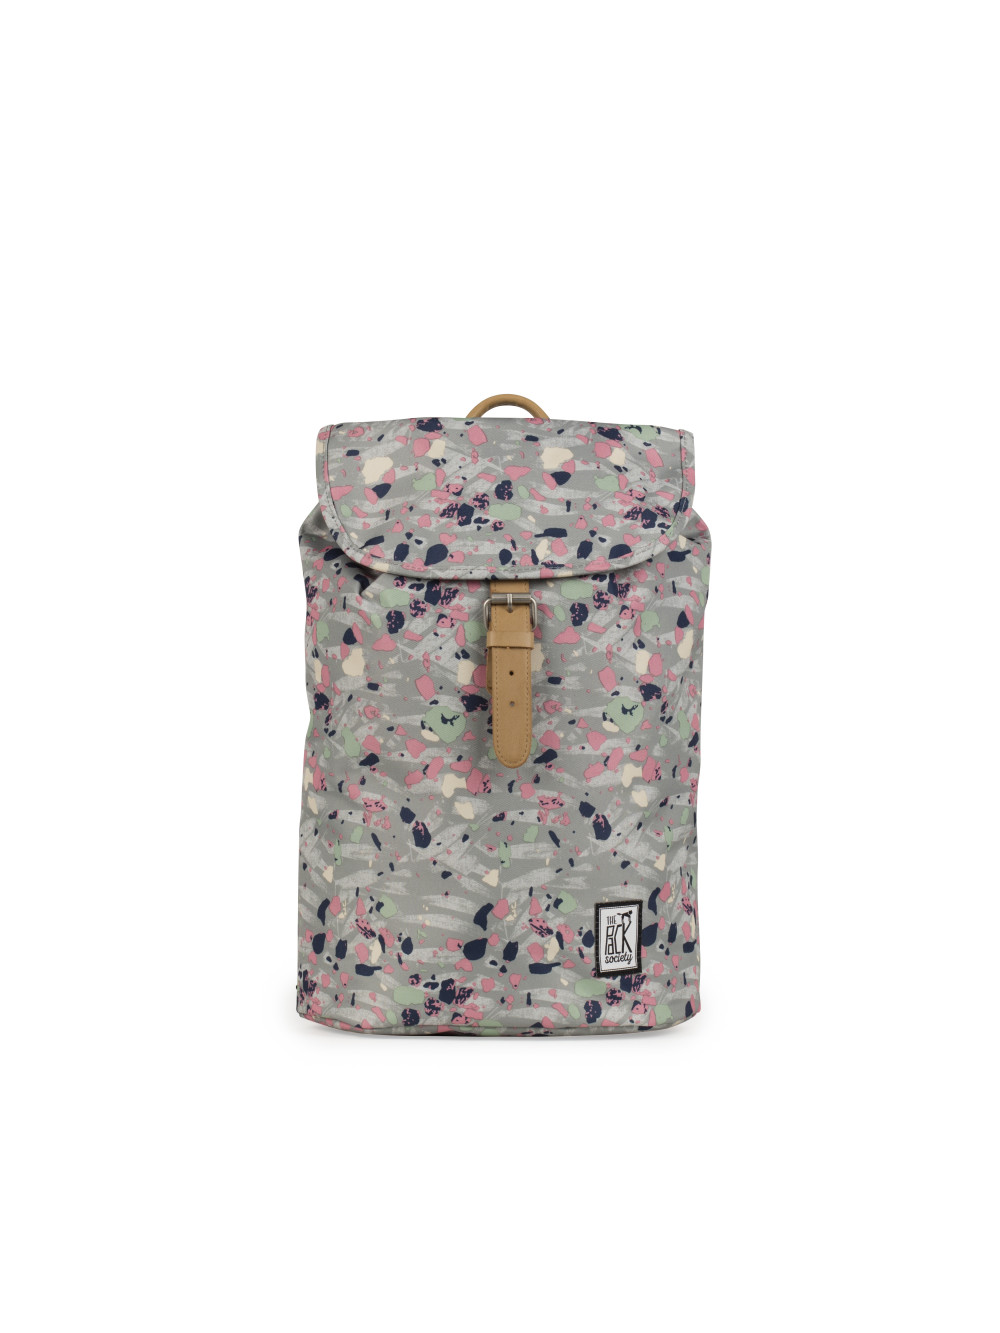 48bf08e9f42 Batoh TPS Small Backpack - Grey Speckles All-over ...